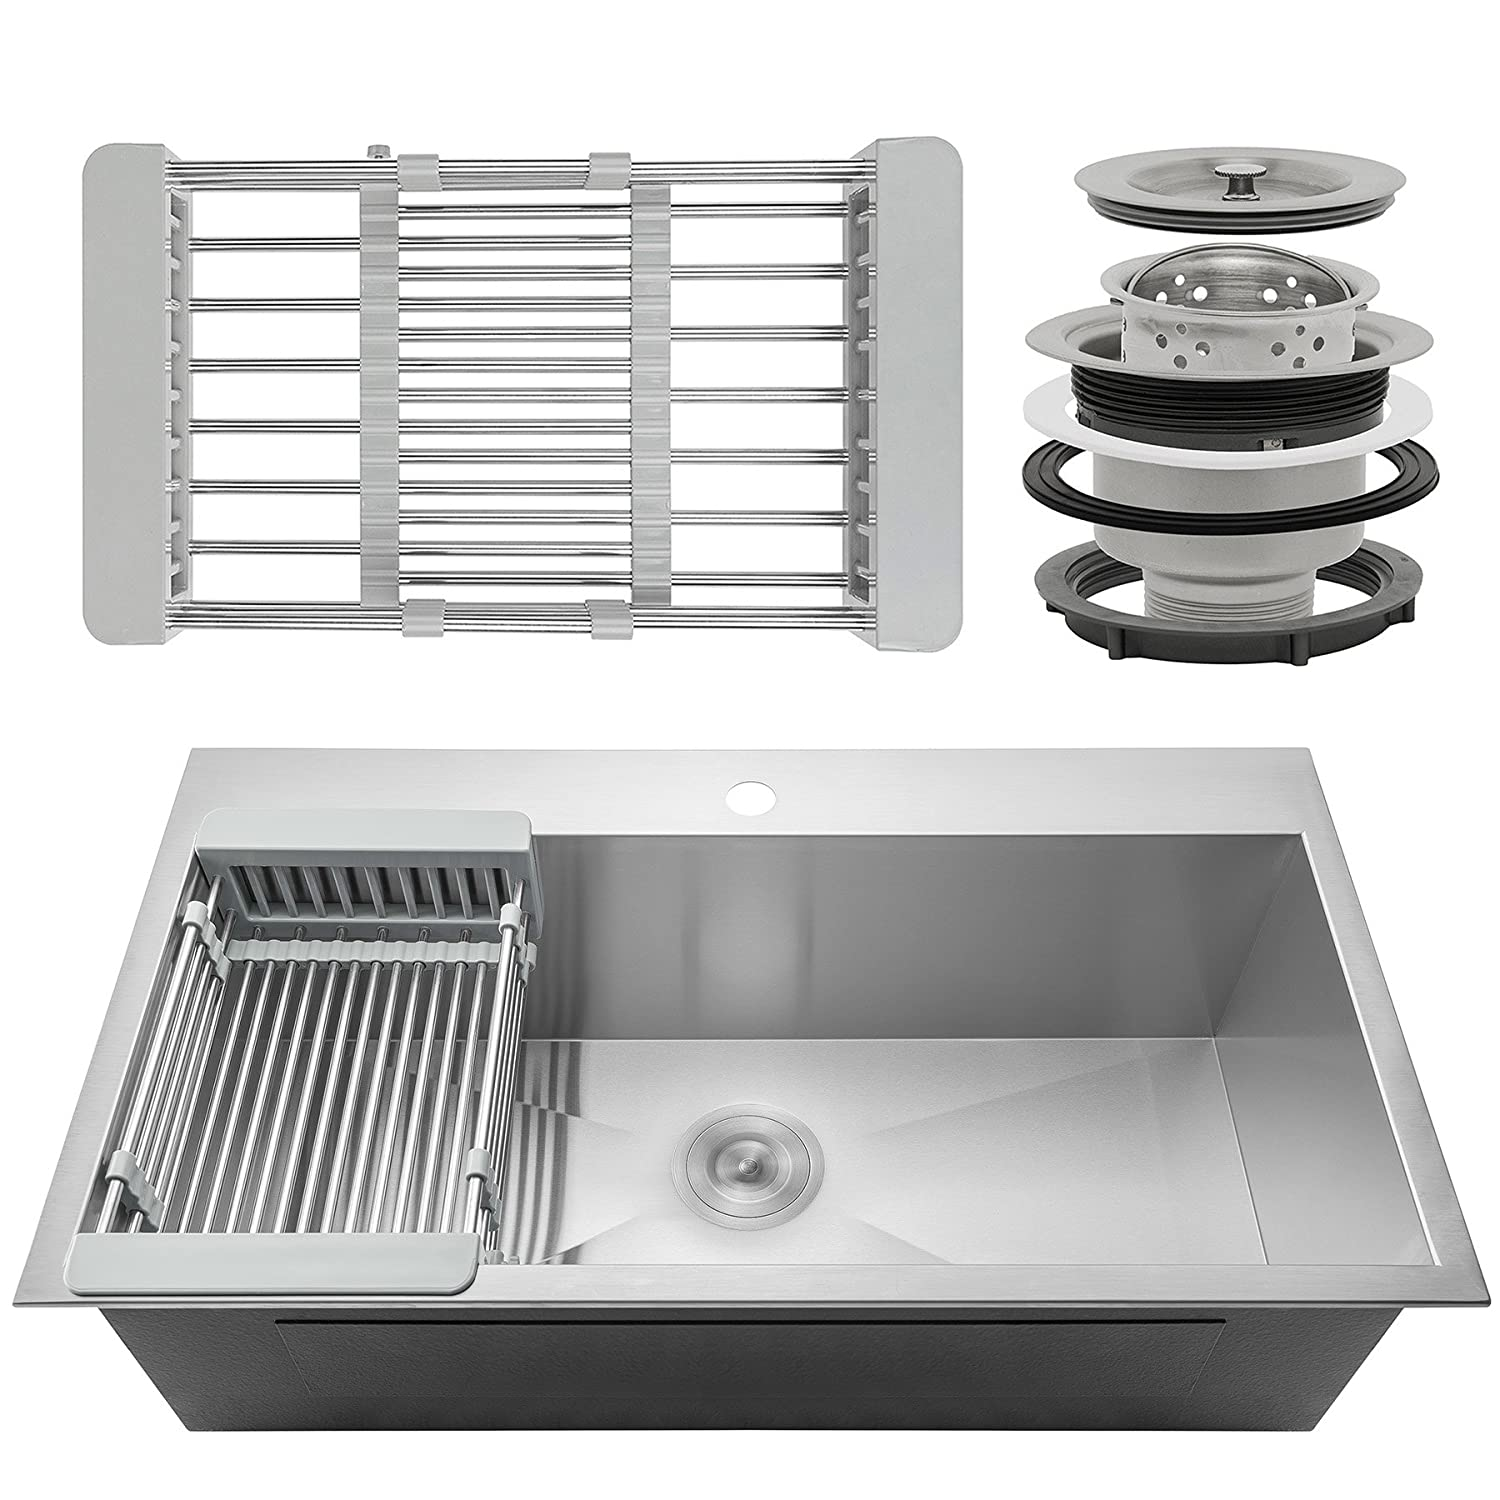 "Perfetto Kitchen and Bath 30"" x 18"" x 9"" 18 Gauge Stainless Steel Topmount Kitchen Sink w/ Strainer & Adjustable Dish Tray"